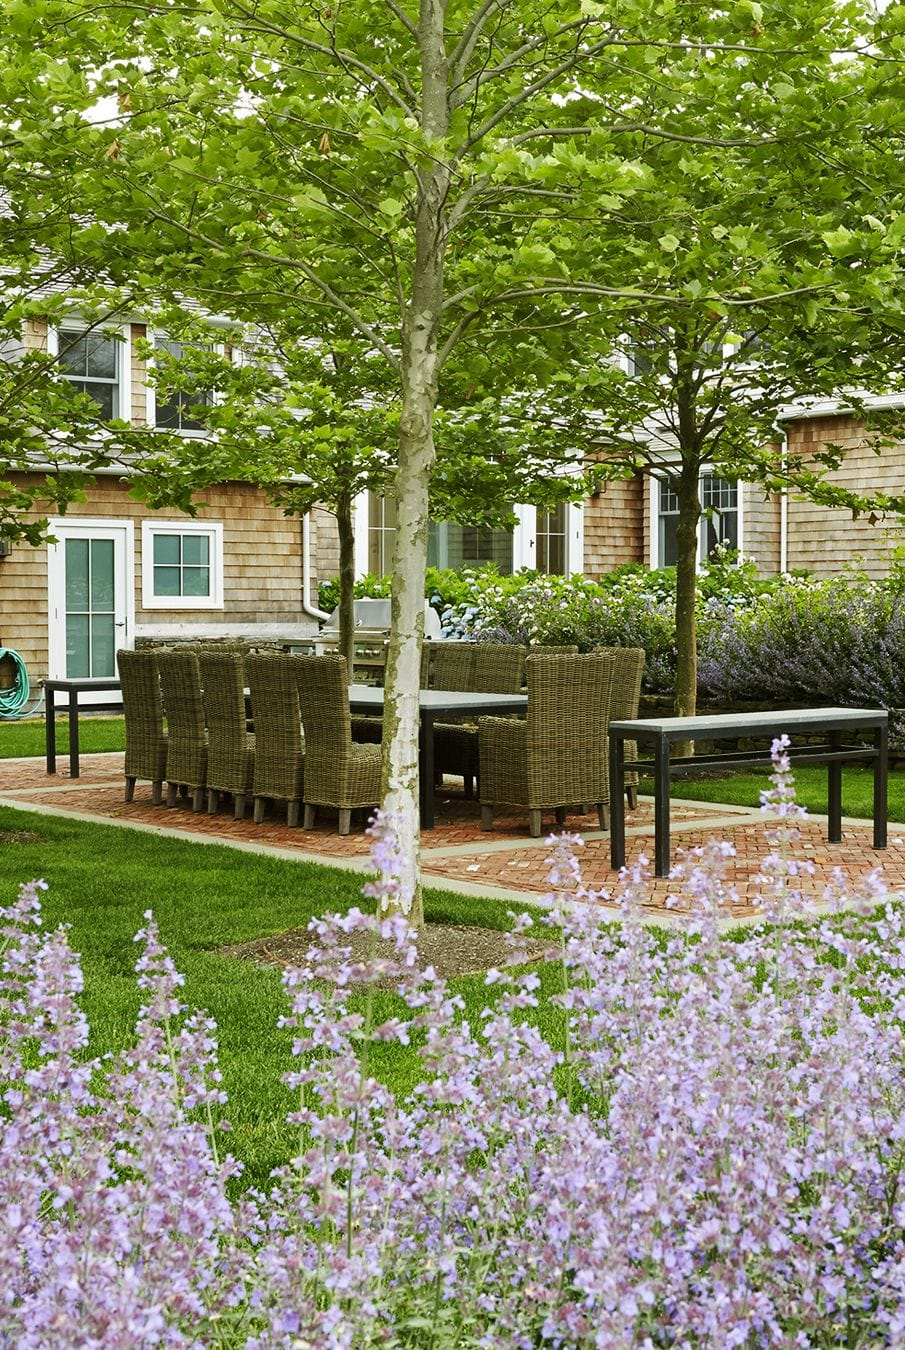 Best backyard landscaping ideas #10